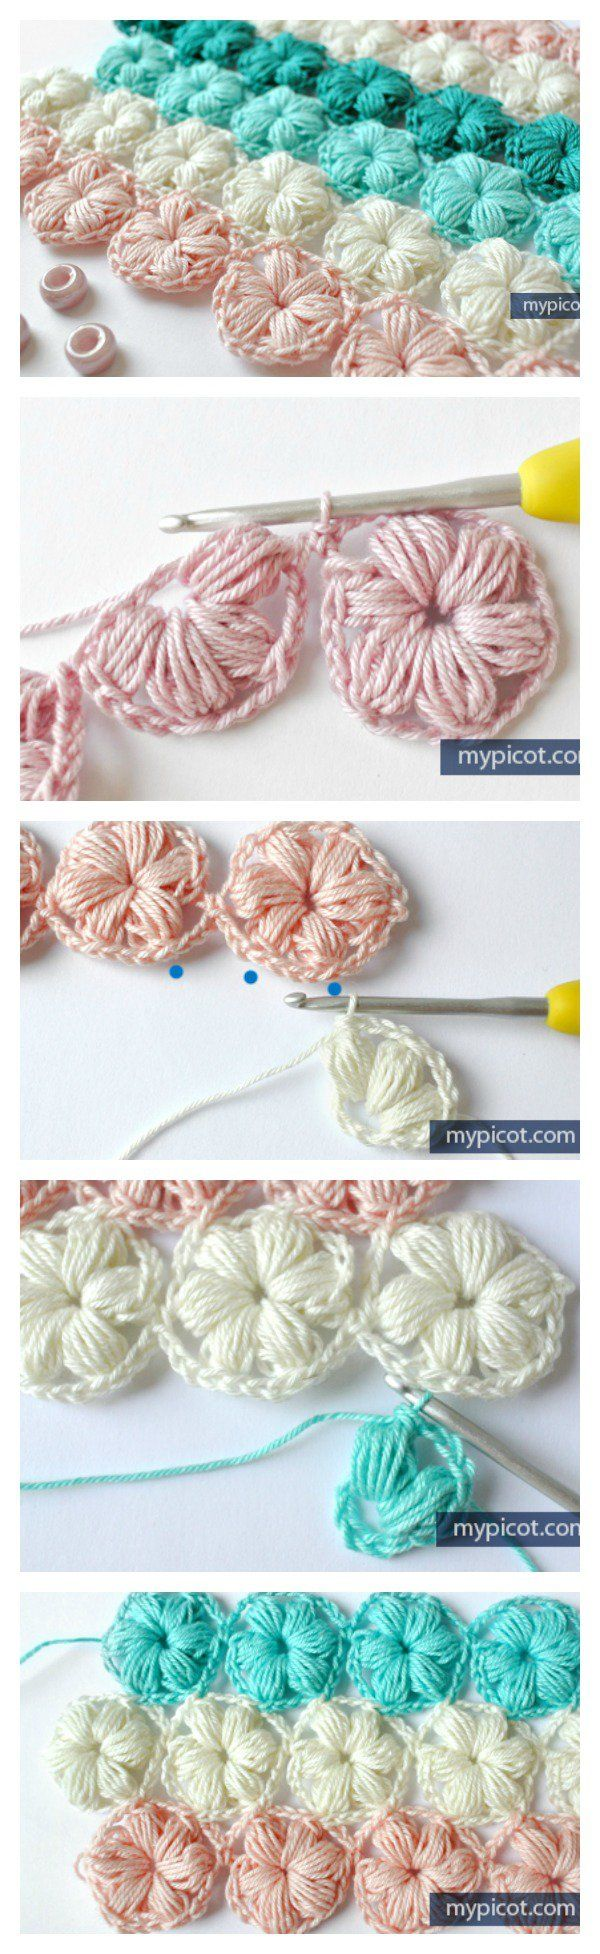 Beautiful Puff Stitch Patterns I Can\'t Wait to Try | Stiche, Frei ...